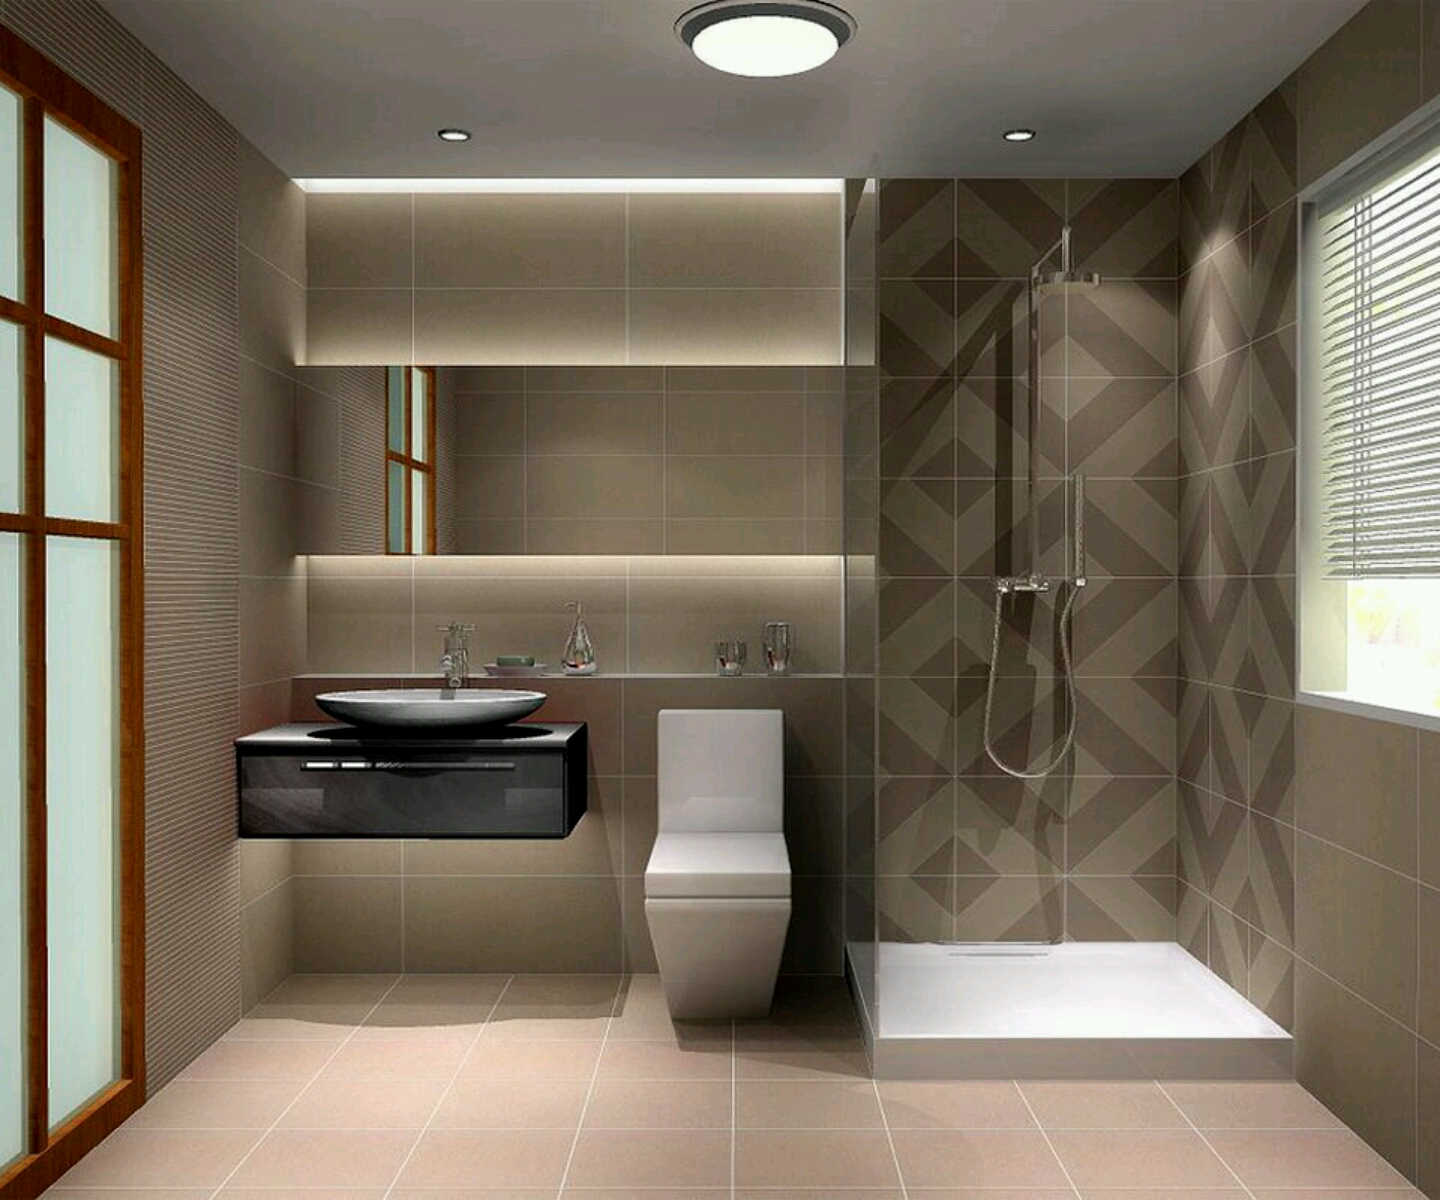 Small modern bathroom design 2017 grasscloth wallpaper Small bathroom designs